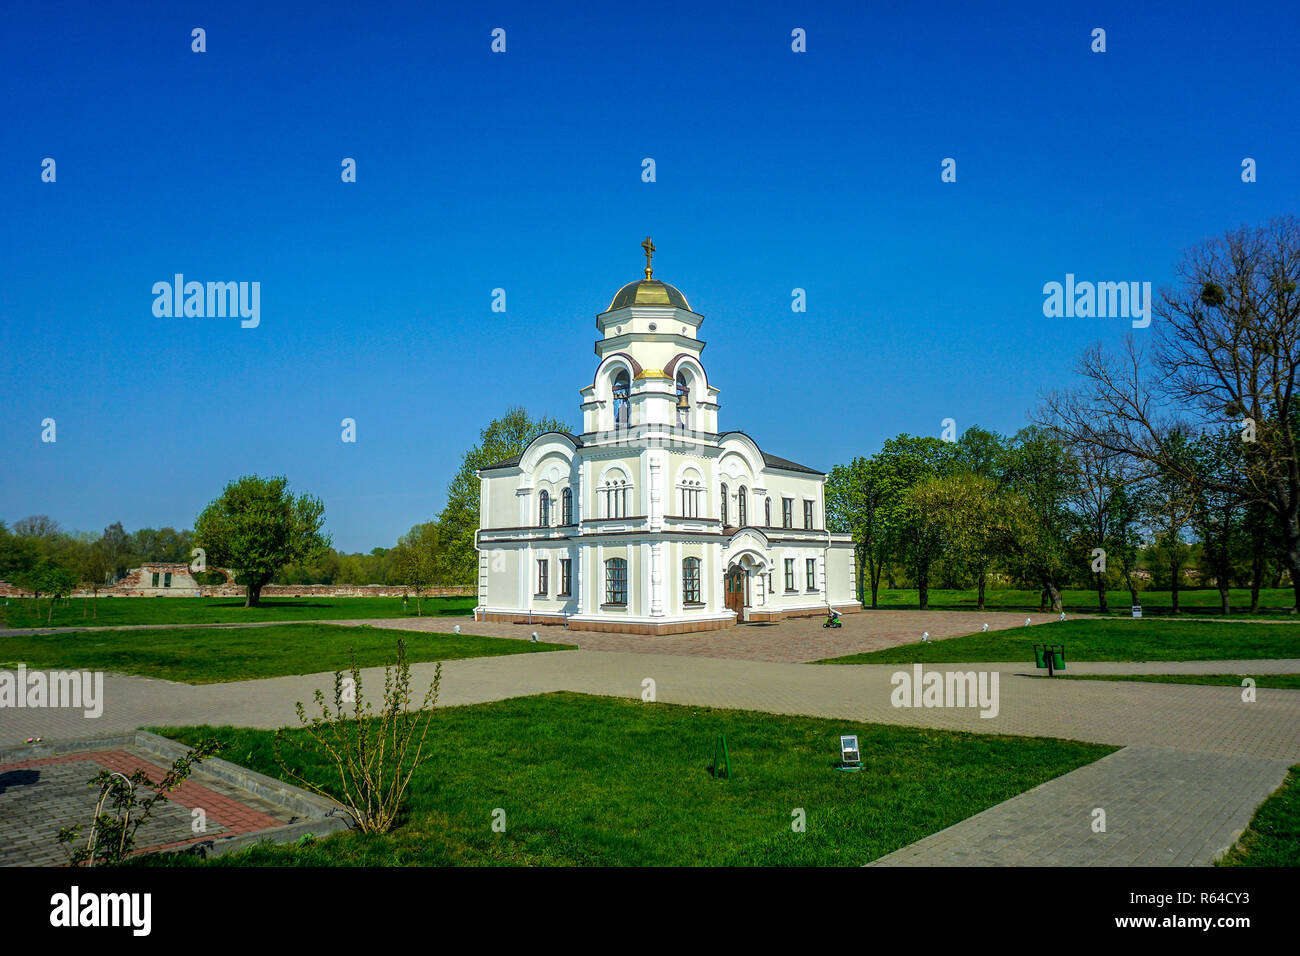 Brest Fortress Hero Complex Orthodox Christian Church - Stock Image